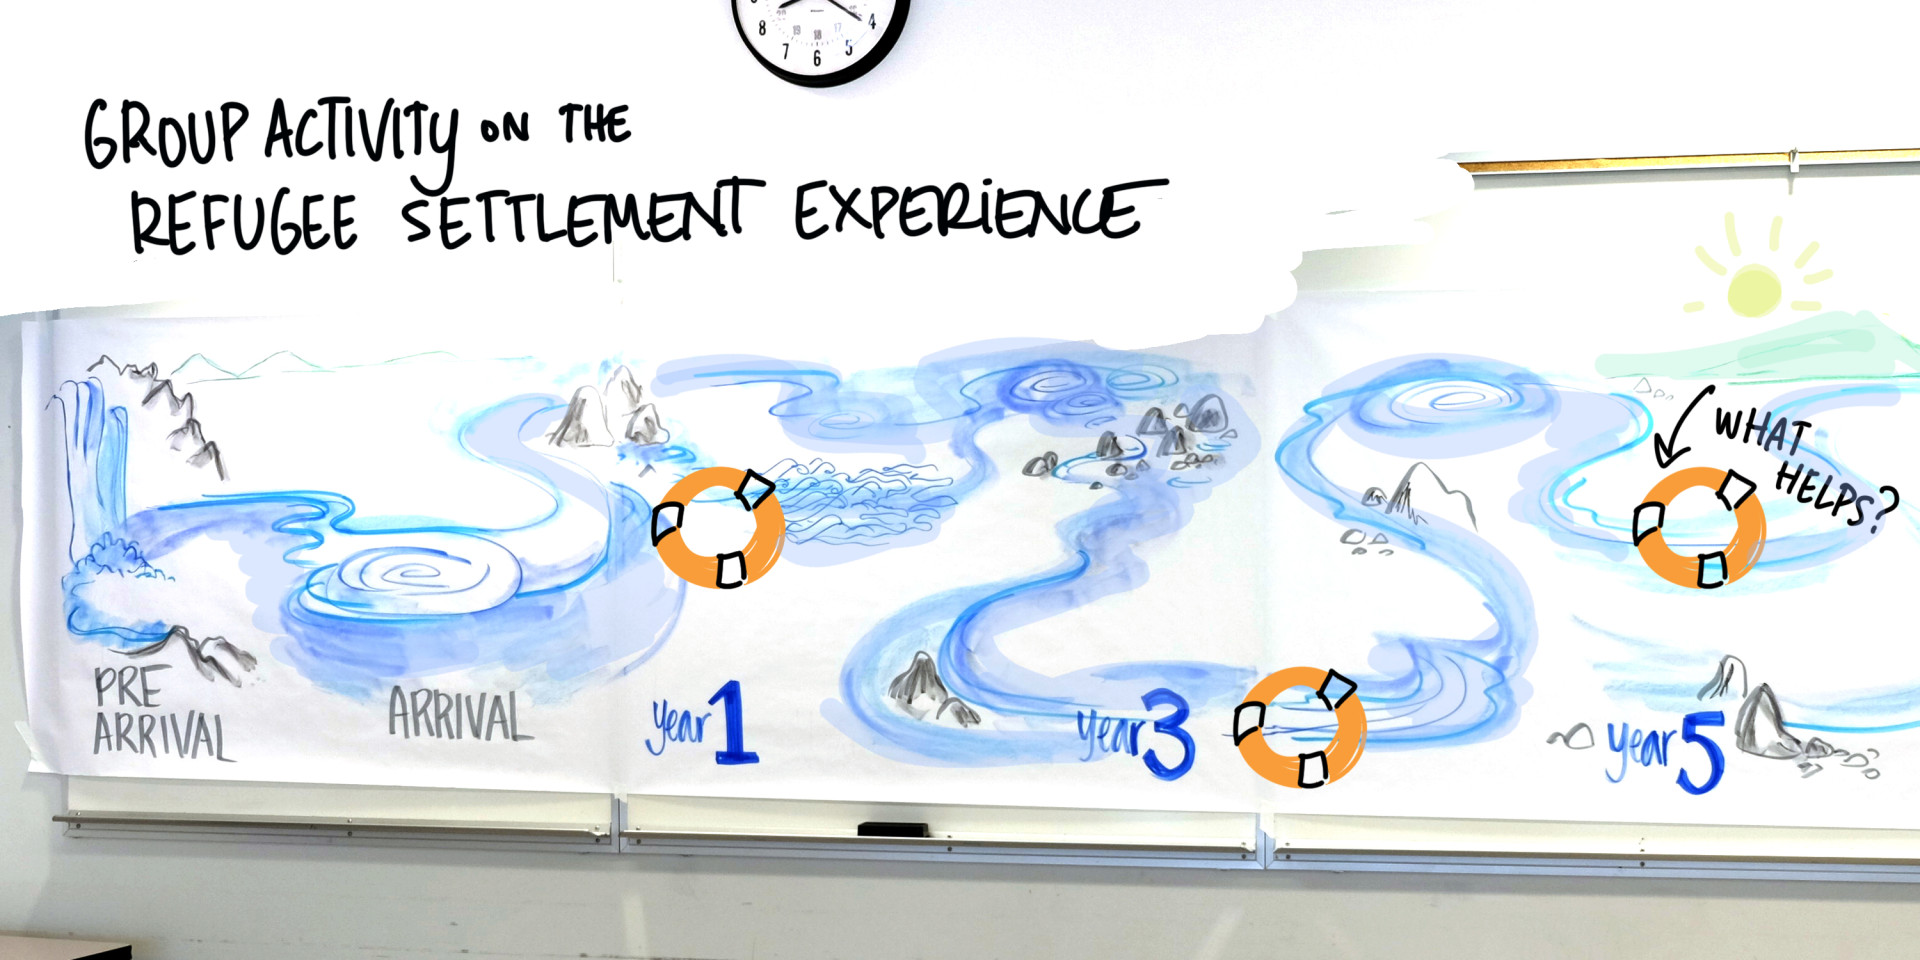 Visual facilitation activity-interactive timeline using water metaphors about refugee settlement experience